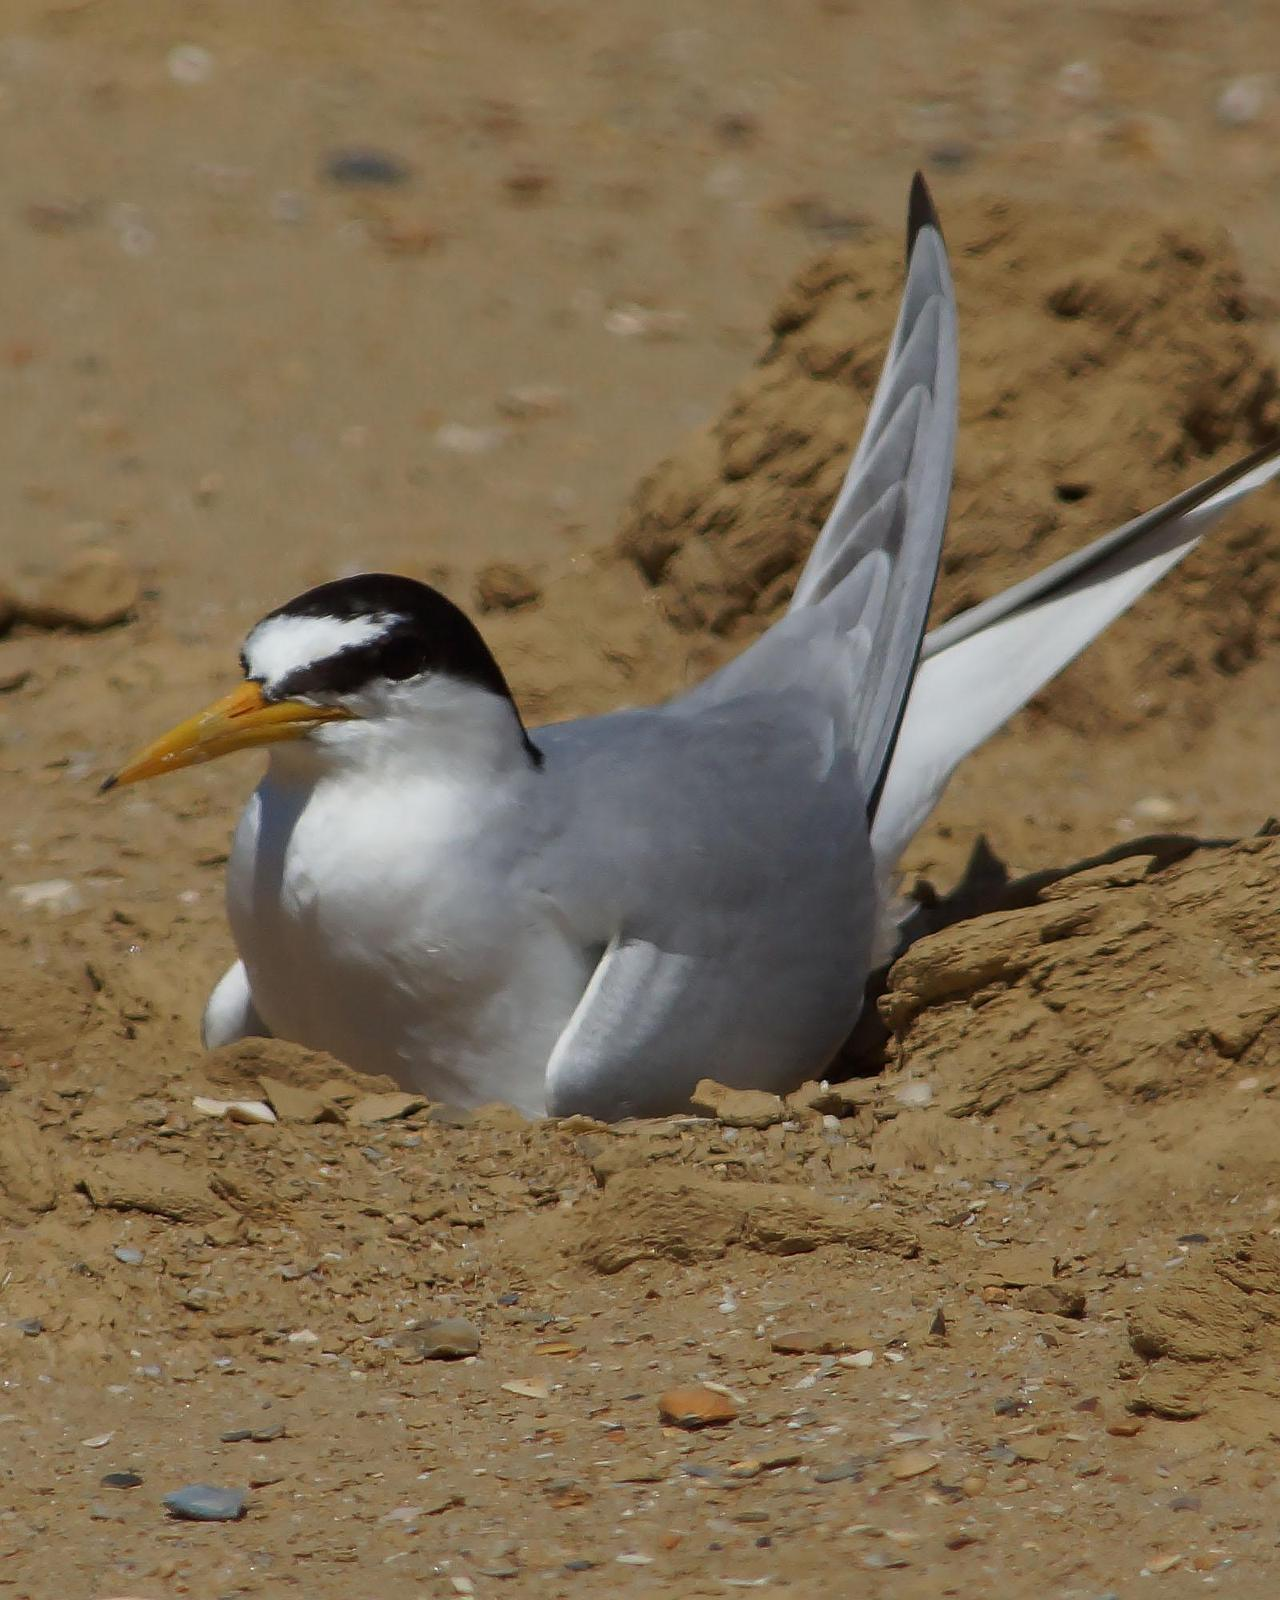 Little Tern Photo by Steve Percival